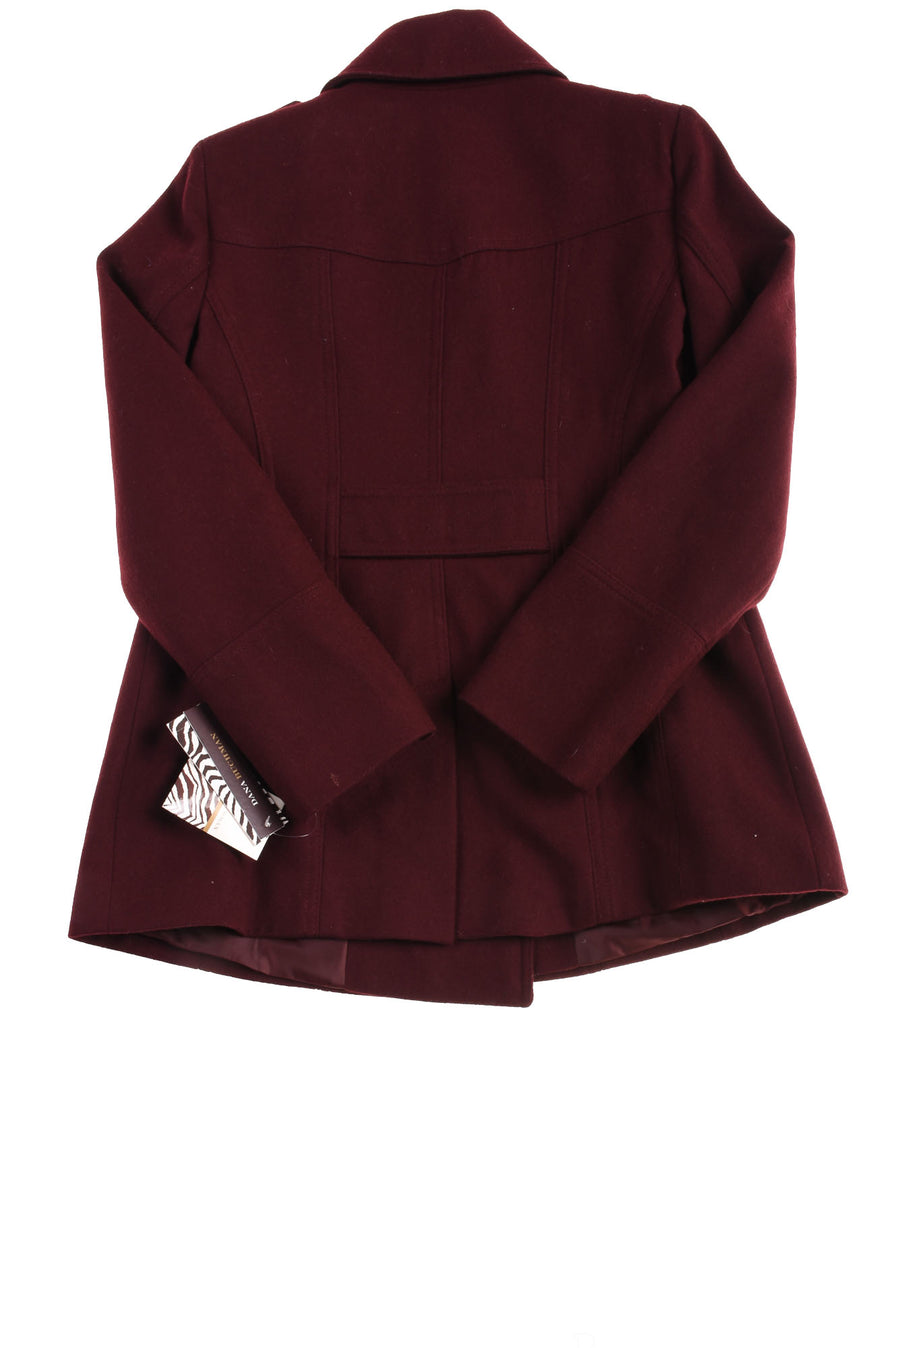 NEW Dana Buchman Women's Coat Medium Burgandy